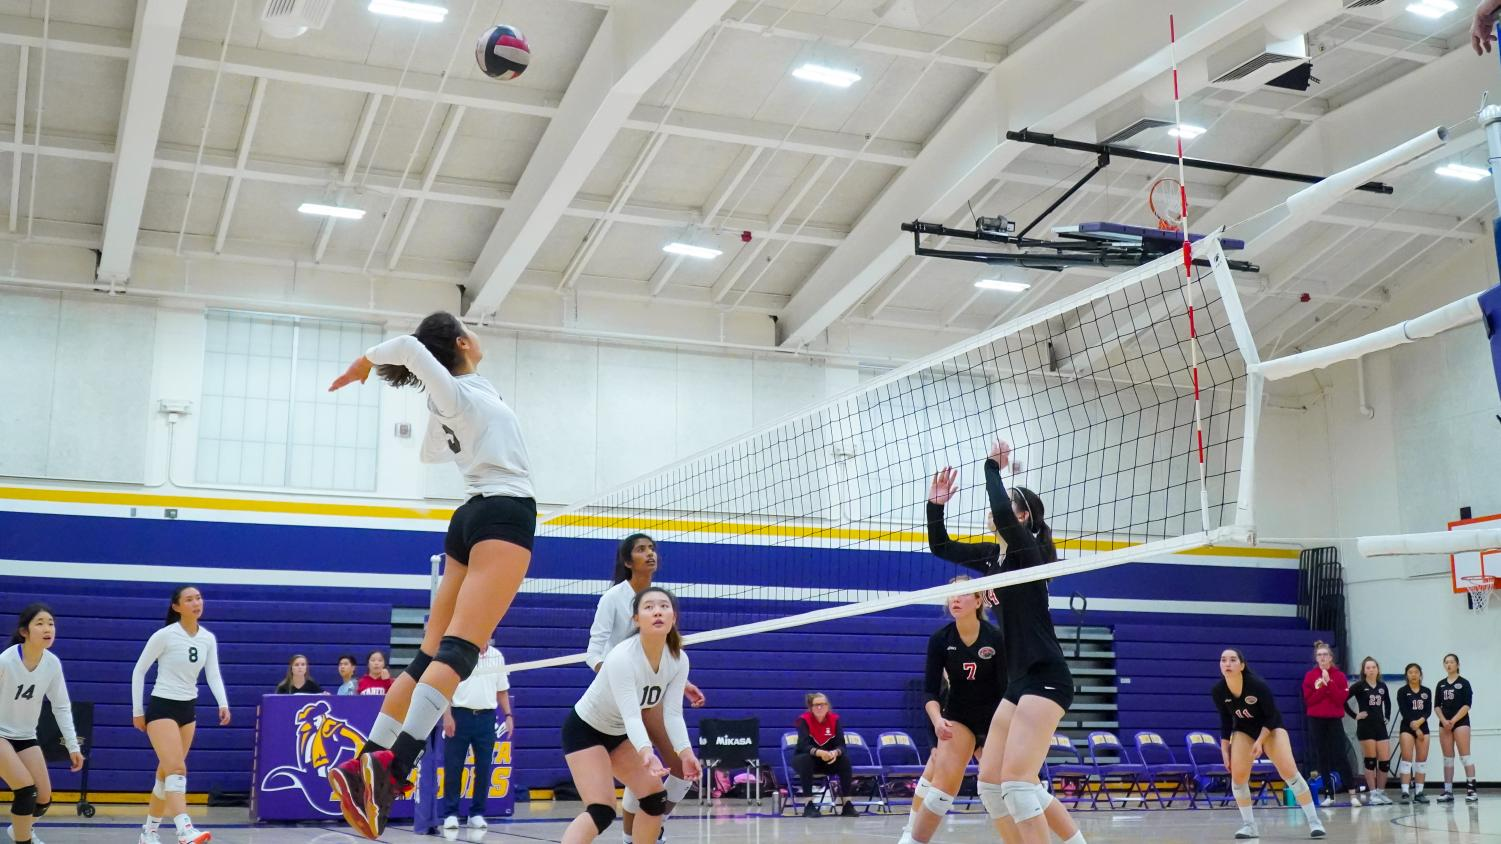 Junior Carina Johnson hopes to score and take the lead against Gunn HS in the fifth set. Photo by Justine Ha